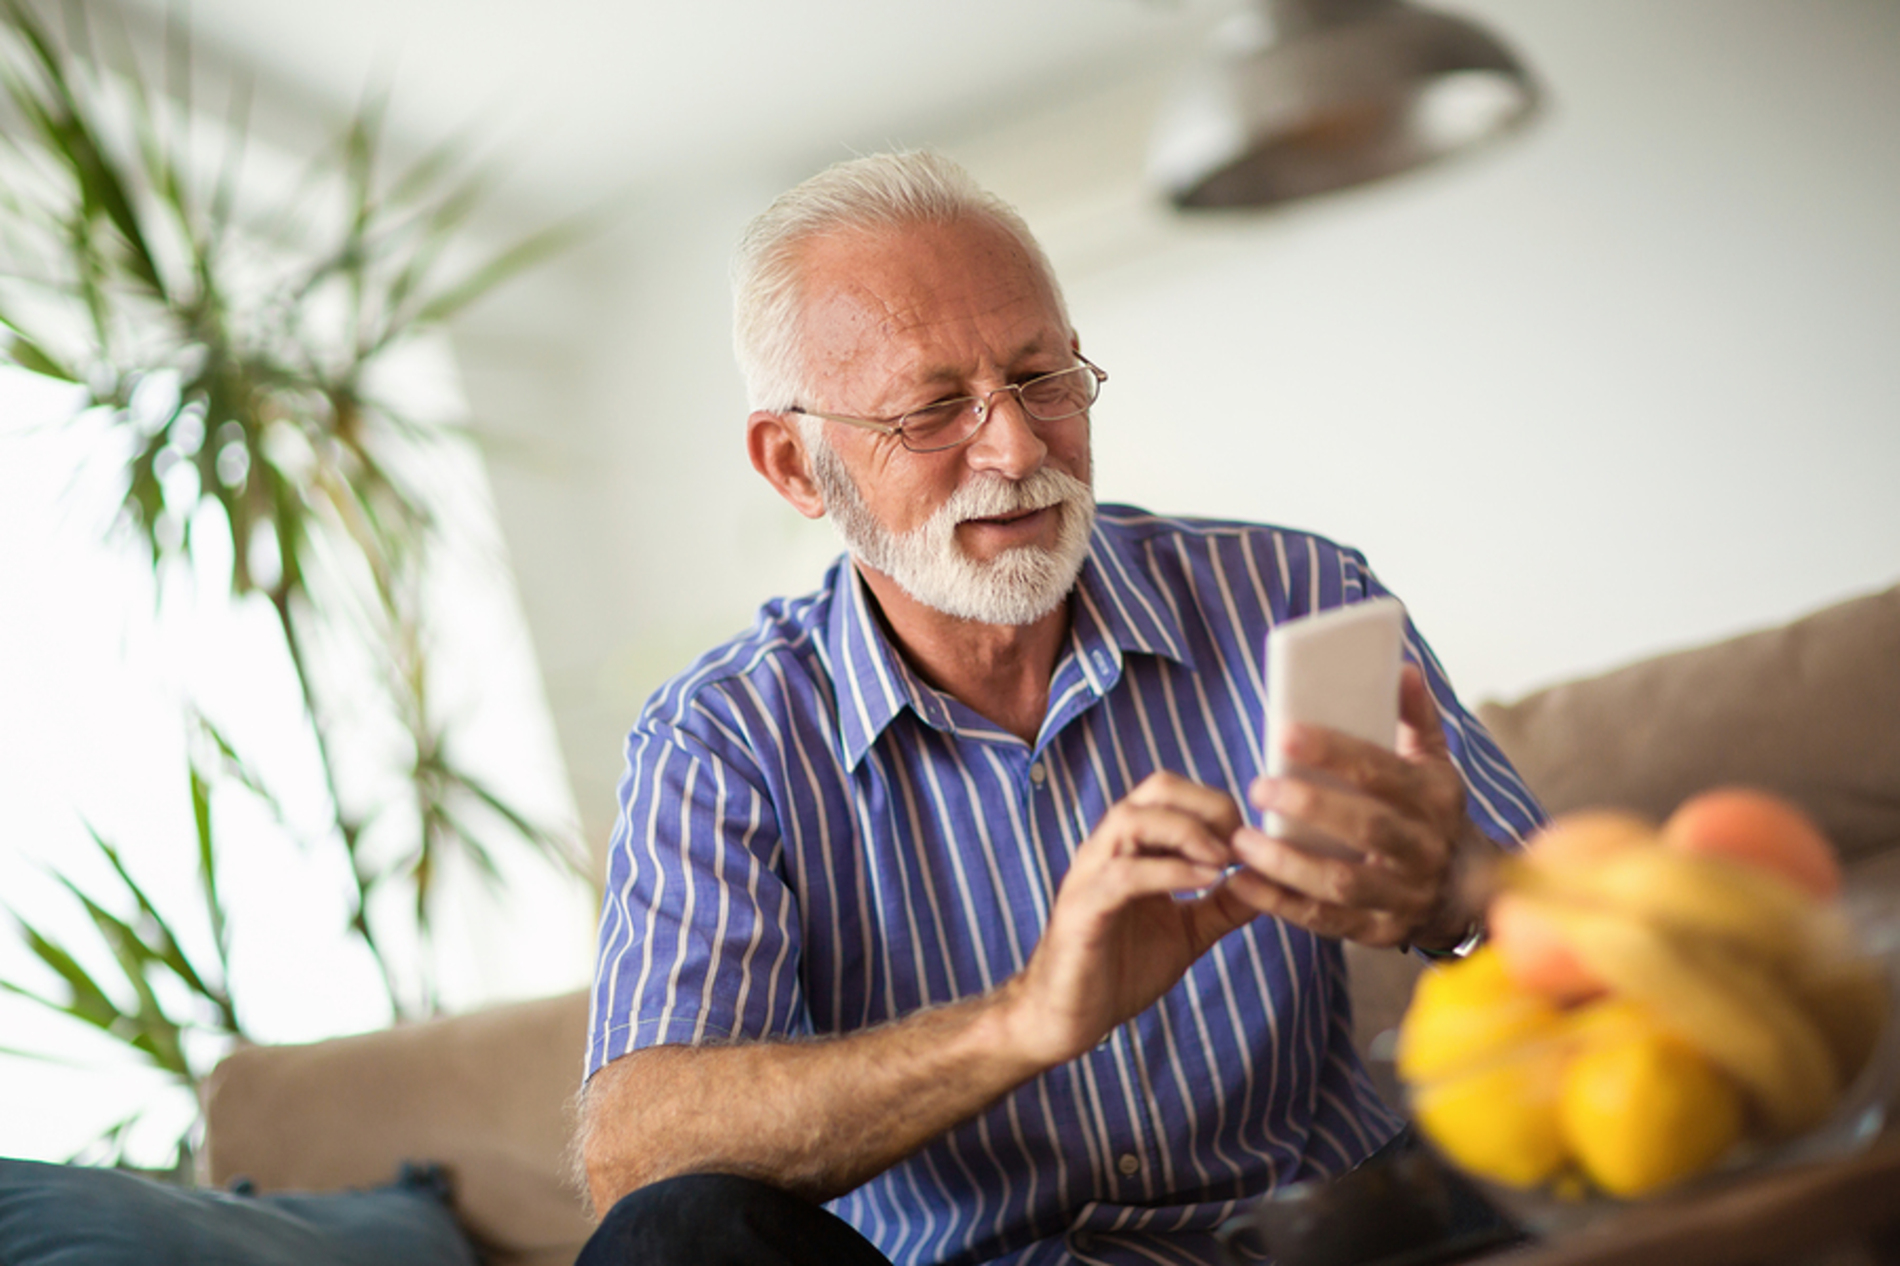 Older man typing on a phone.